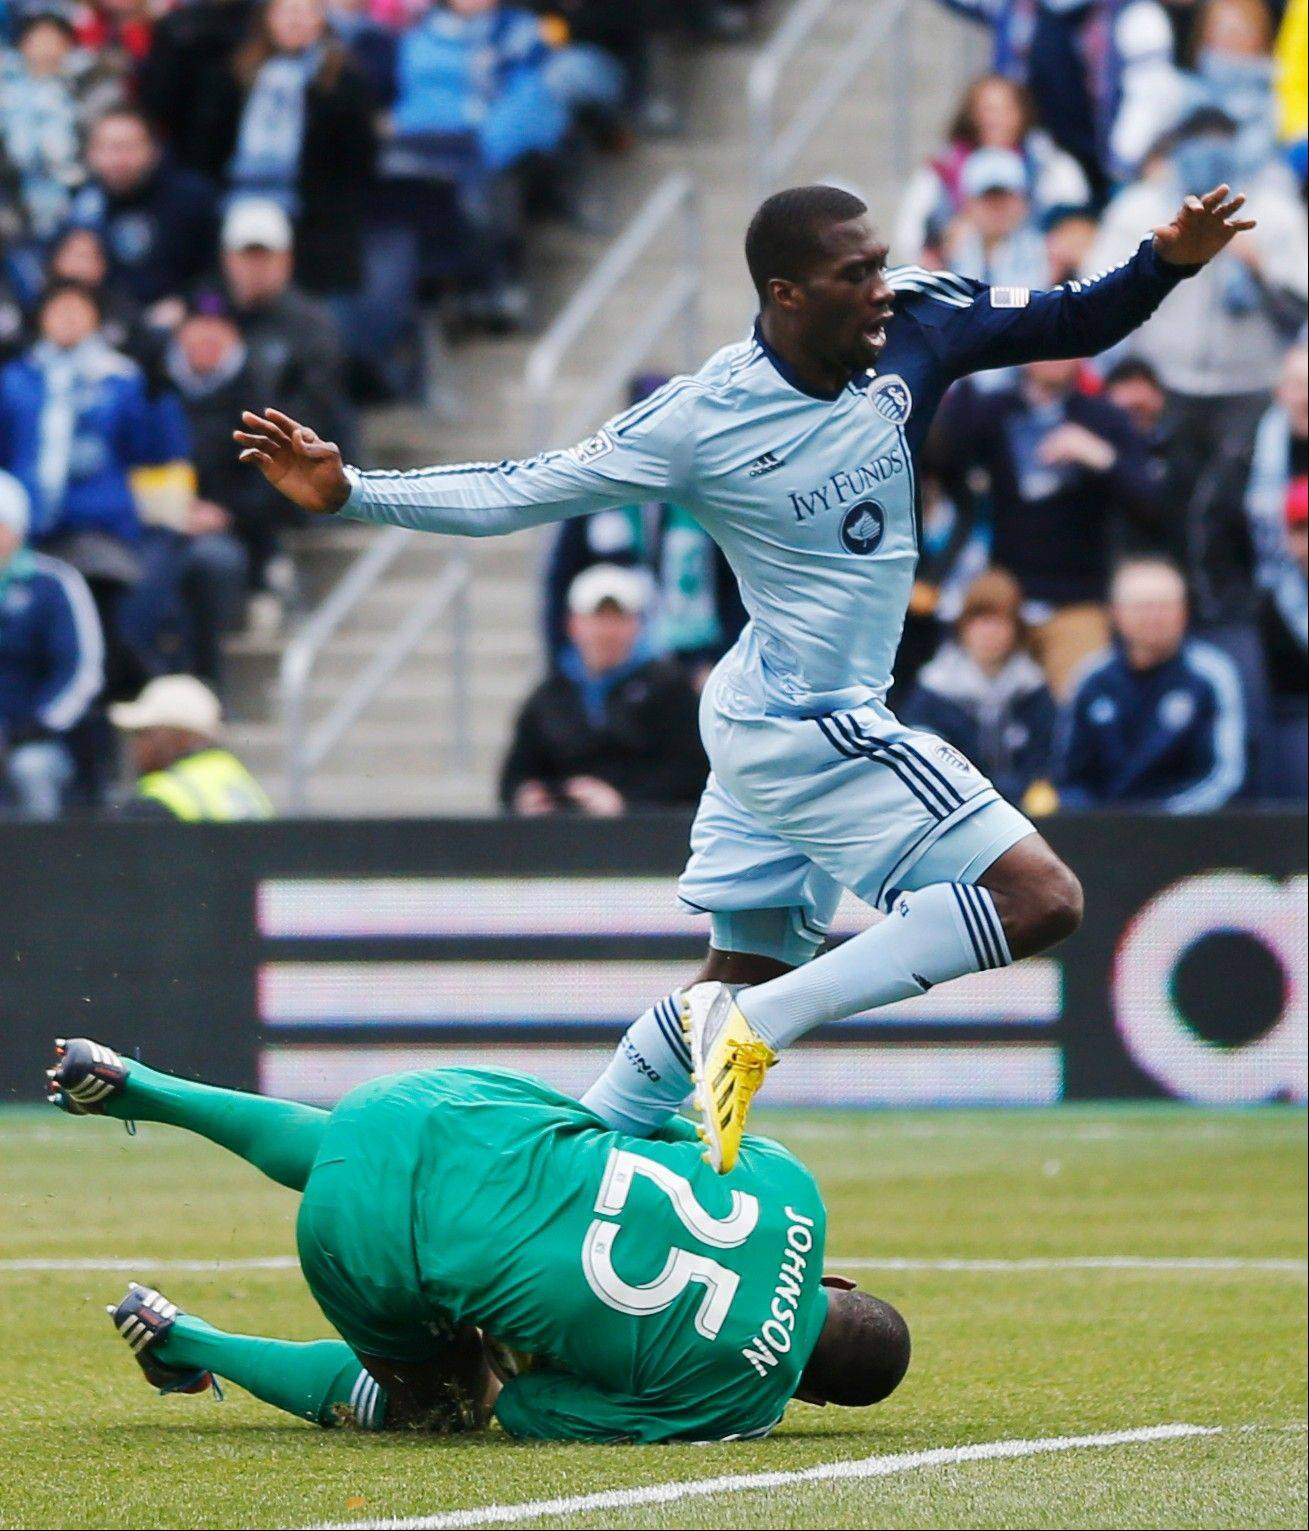 Sporting KC forward C.J. Sapong leaps over Chicago Fire goalkeeper Sean Johnson during Saturday's match in Kansas City, Kan. Johnson, who has been called to join the U.S. National Team, earned his 16th MLS shutout in the match.